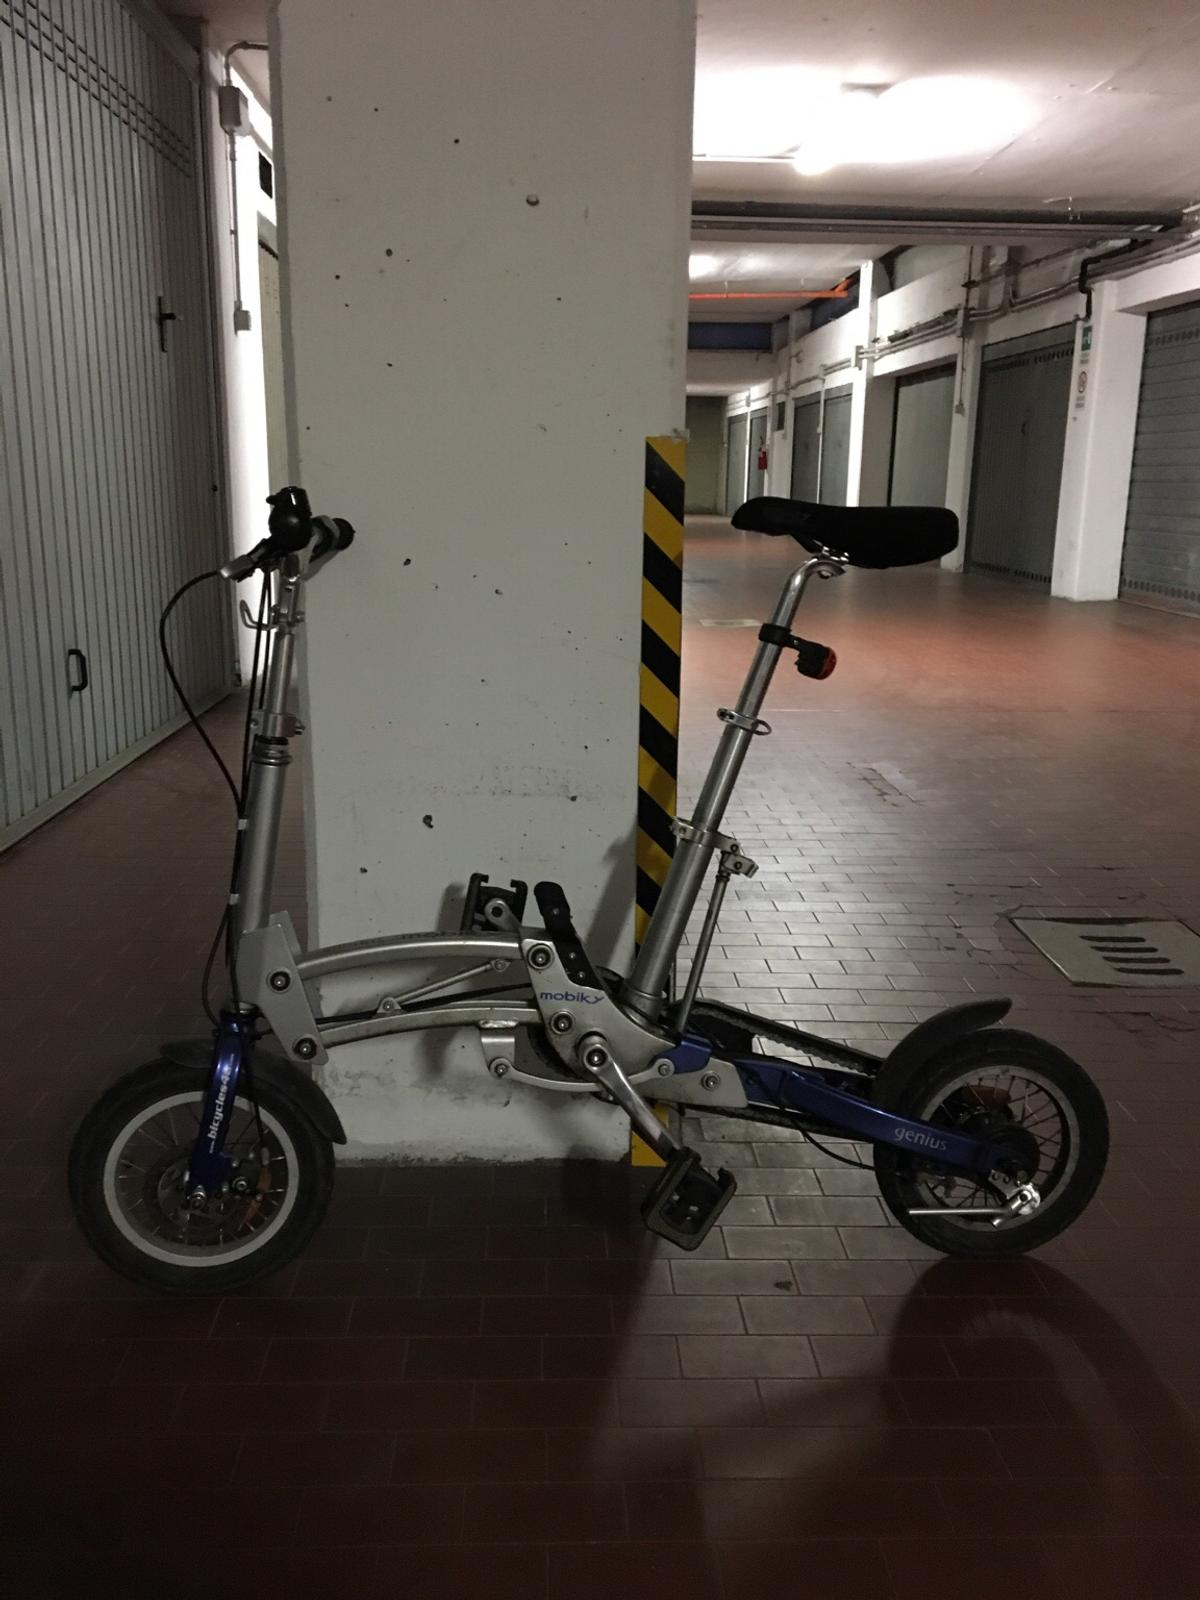 Bici Pieghevole Mobiky.Bici Pieghevole Mobiky Genius In 40026 Imola For 150 00 For